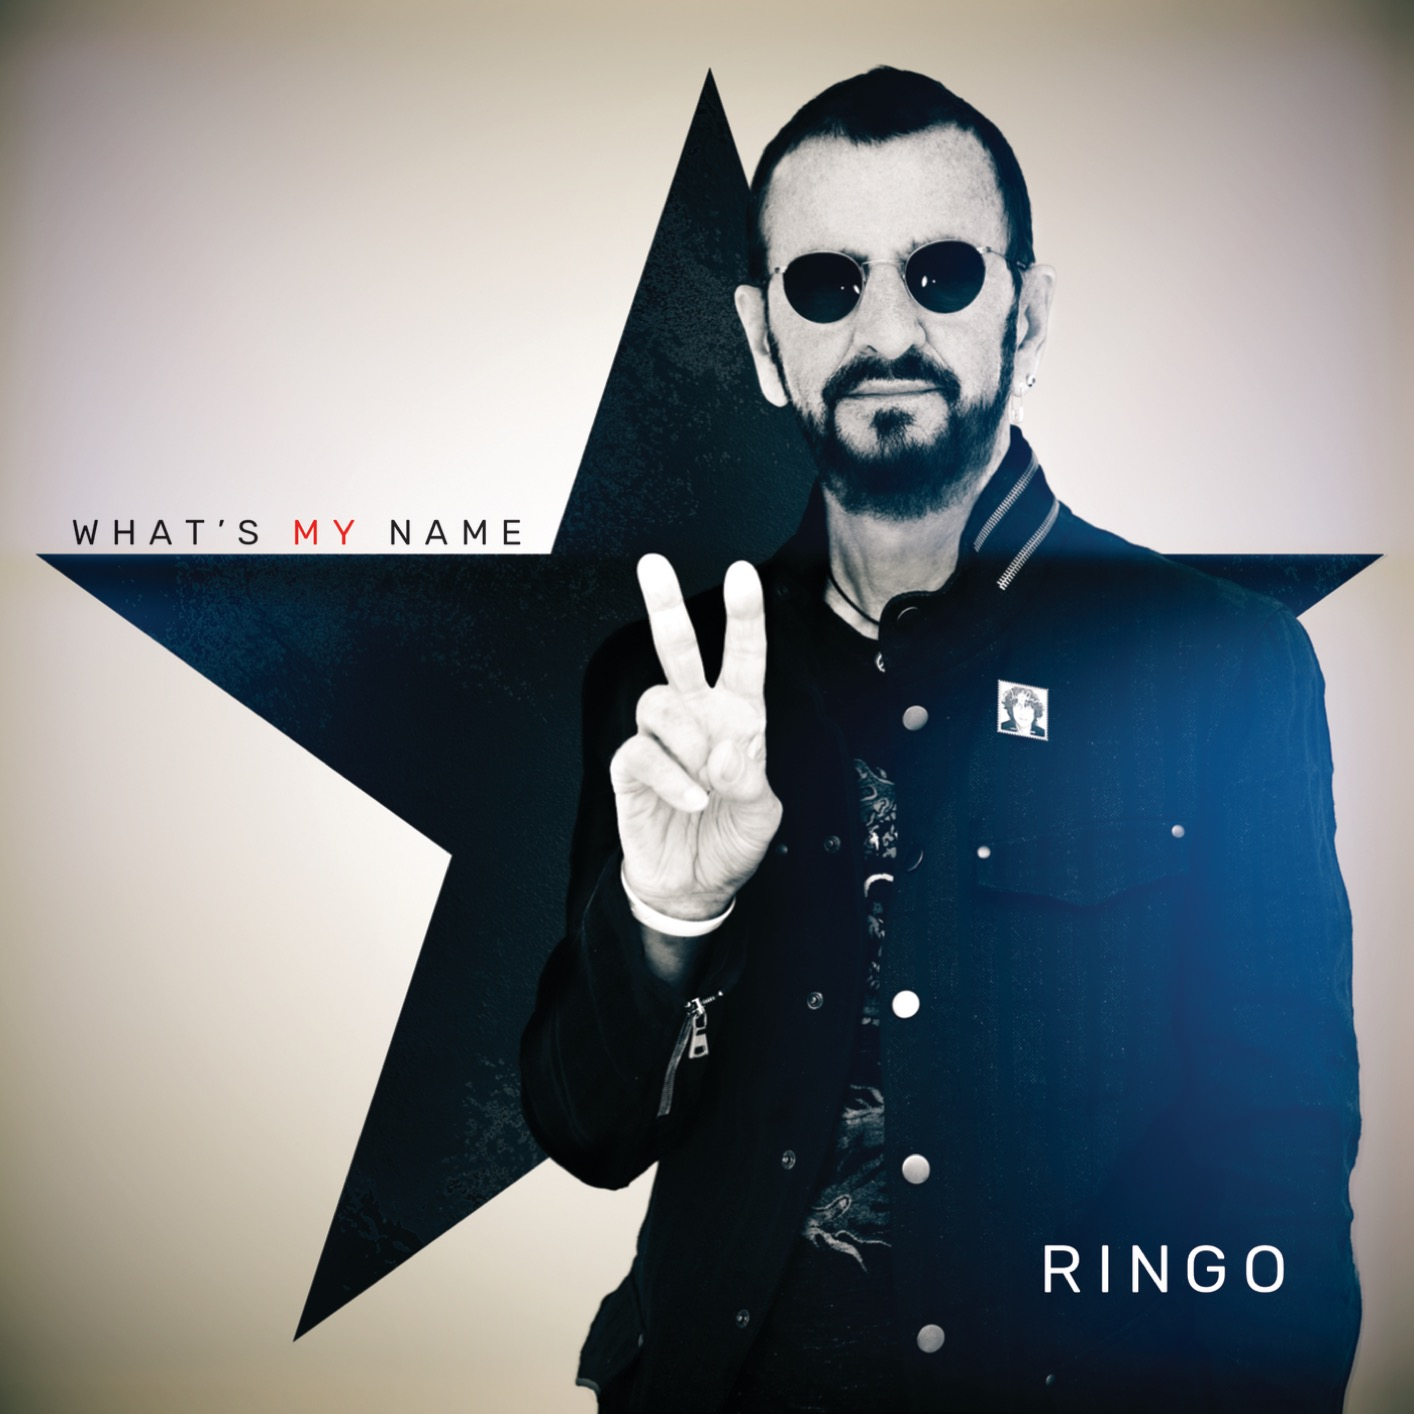 [TR24][OF] Ringo Starr - Whats My Name - 2019 (Rock)